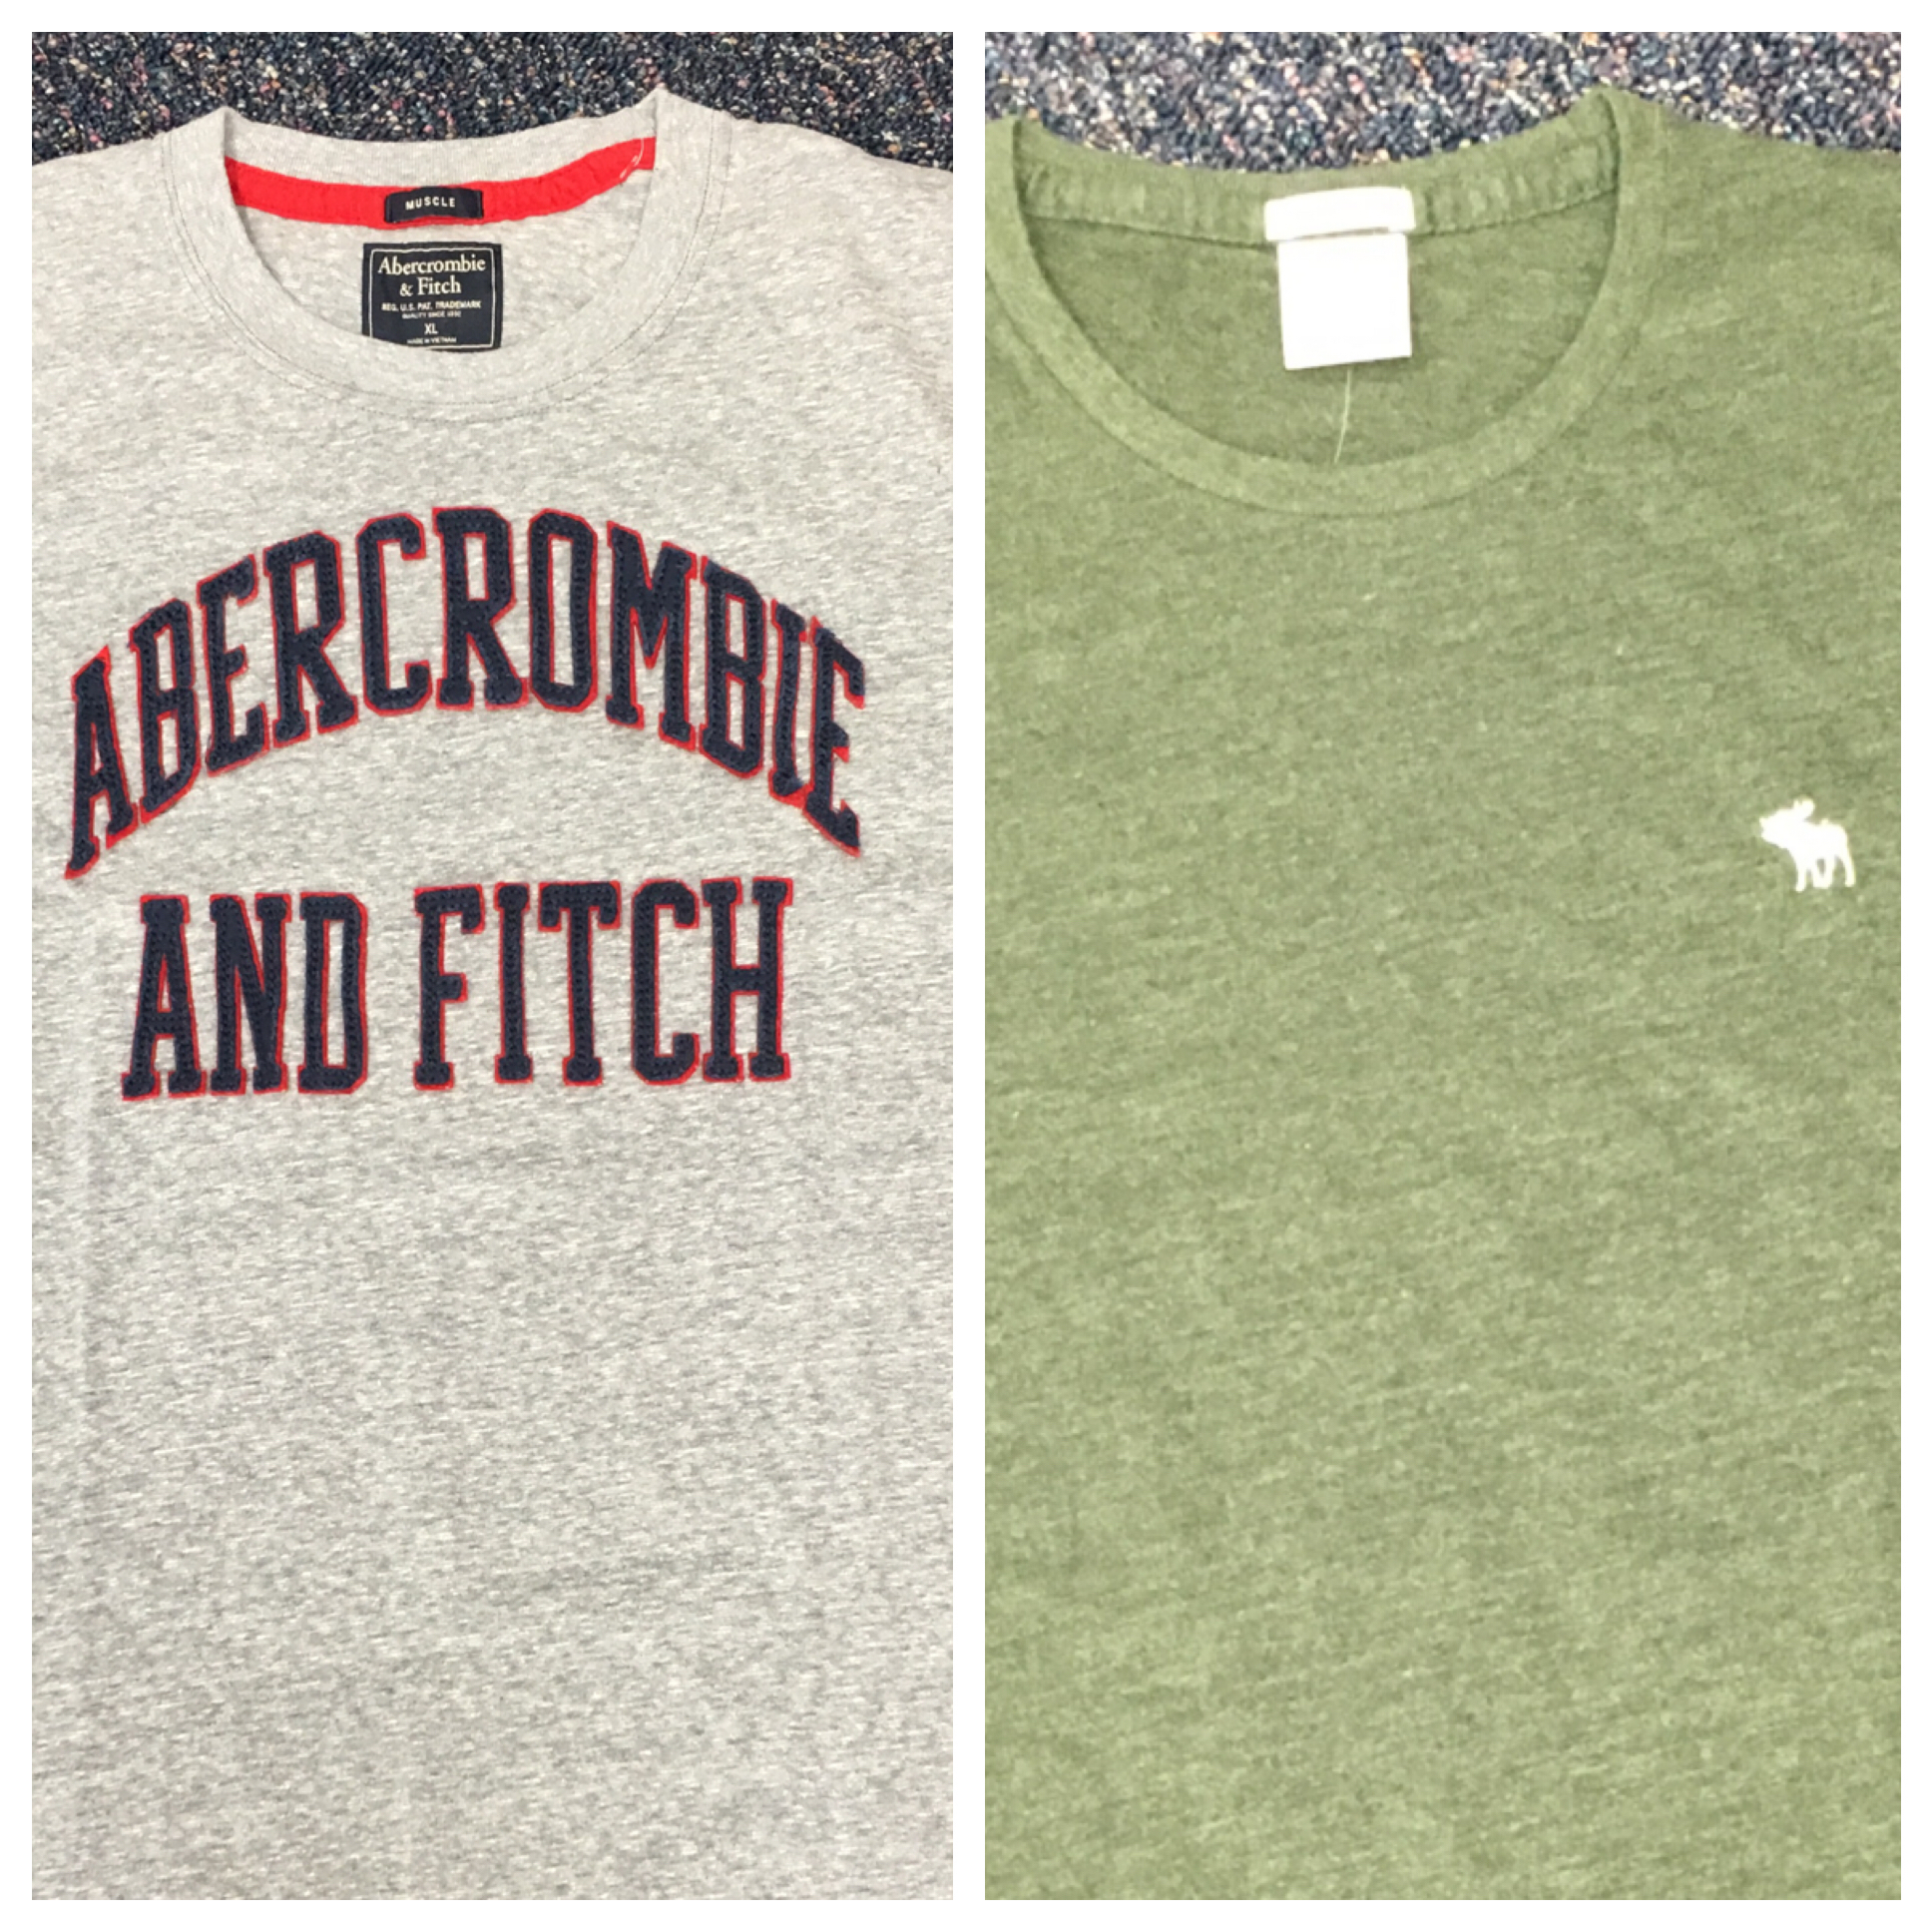 abercrombie and fitch subsidiaries